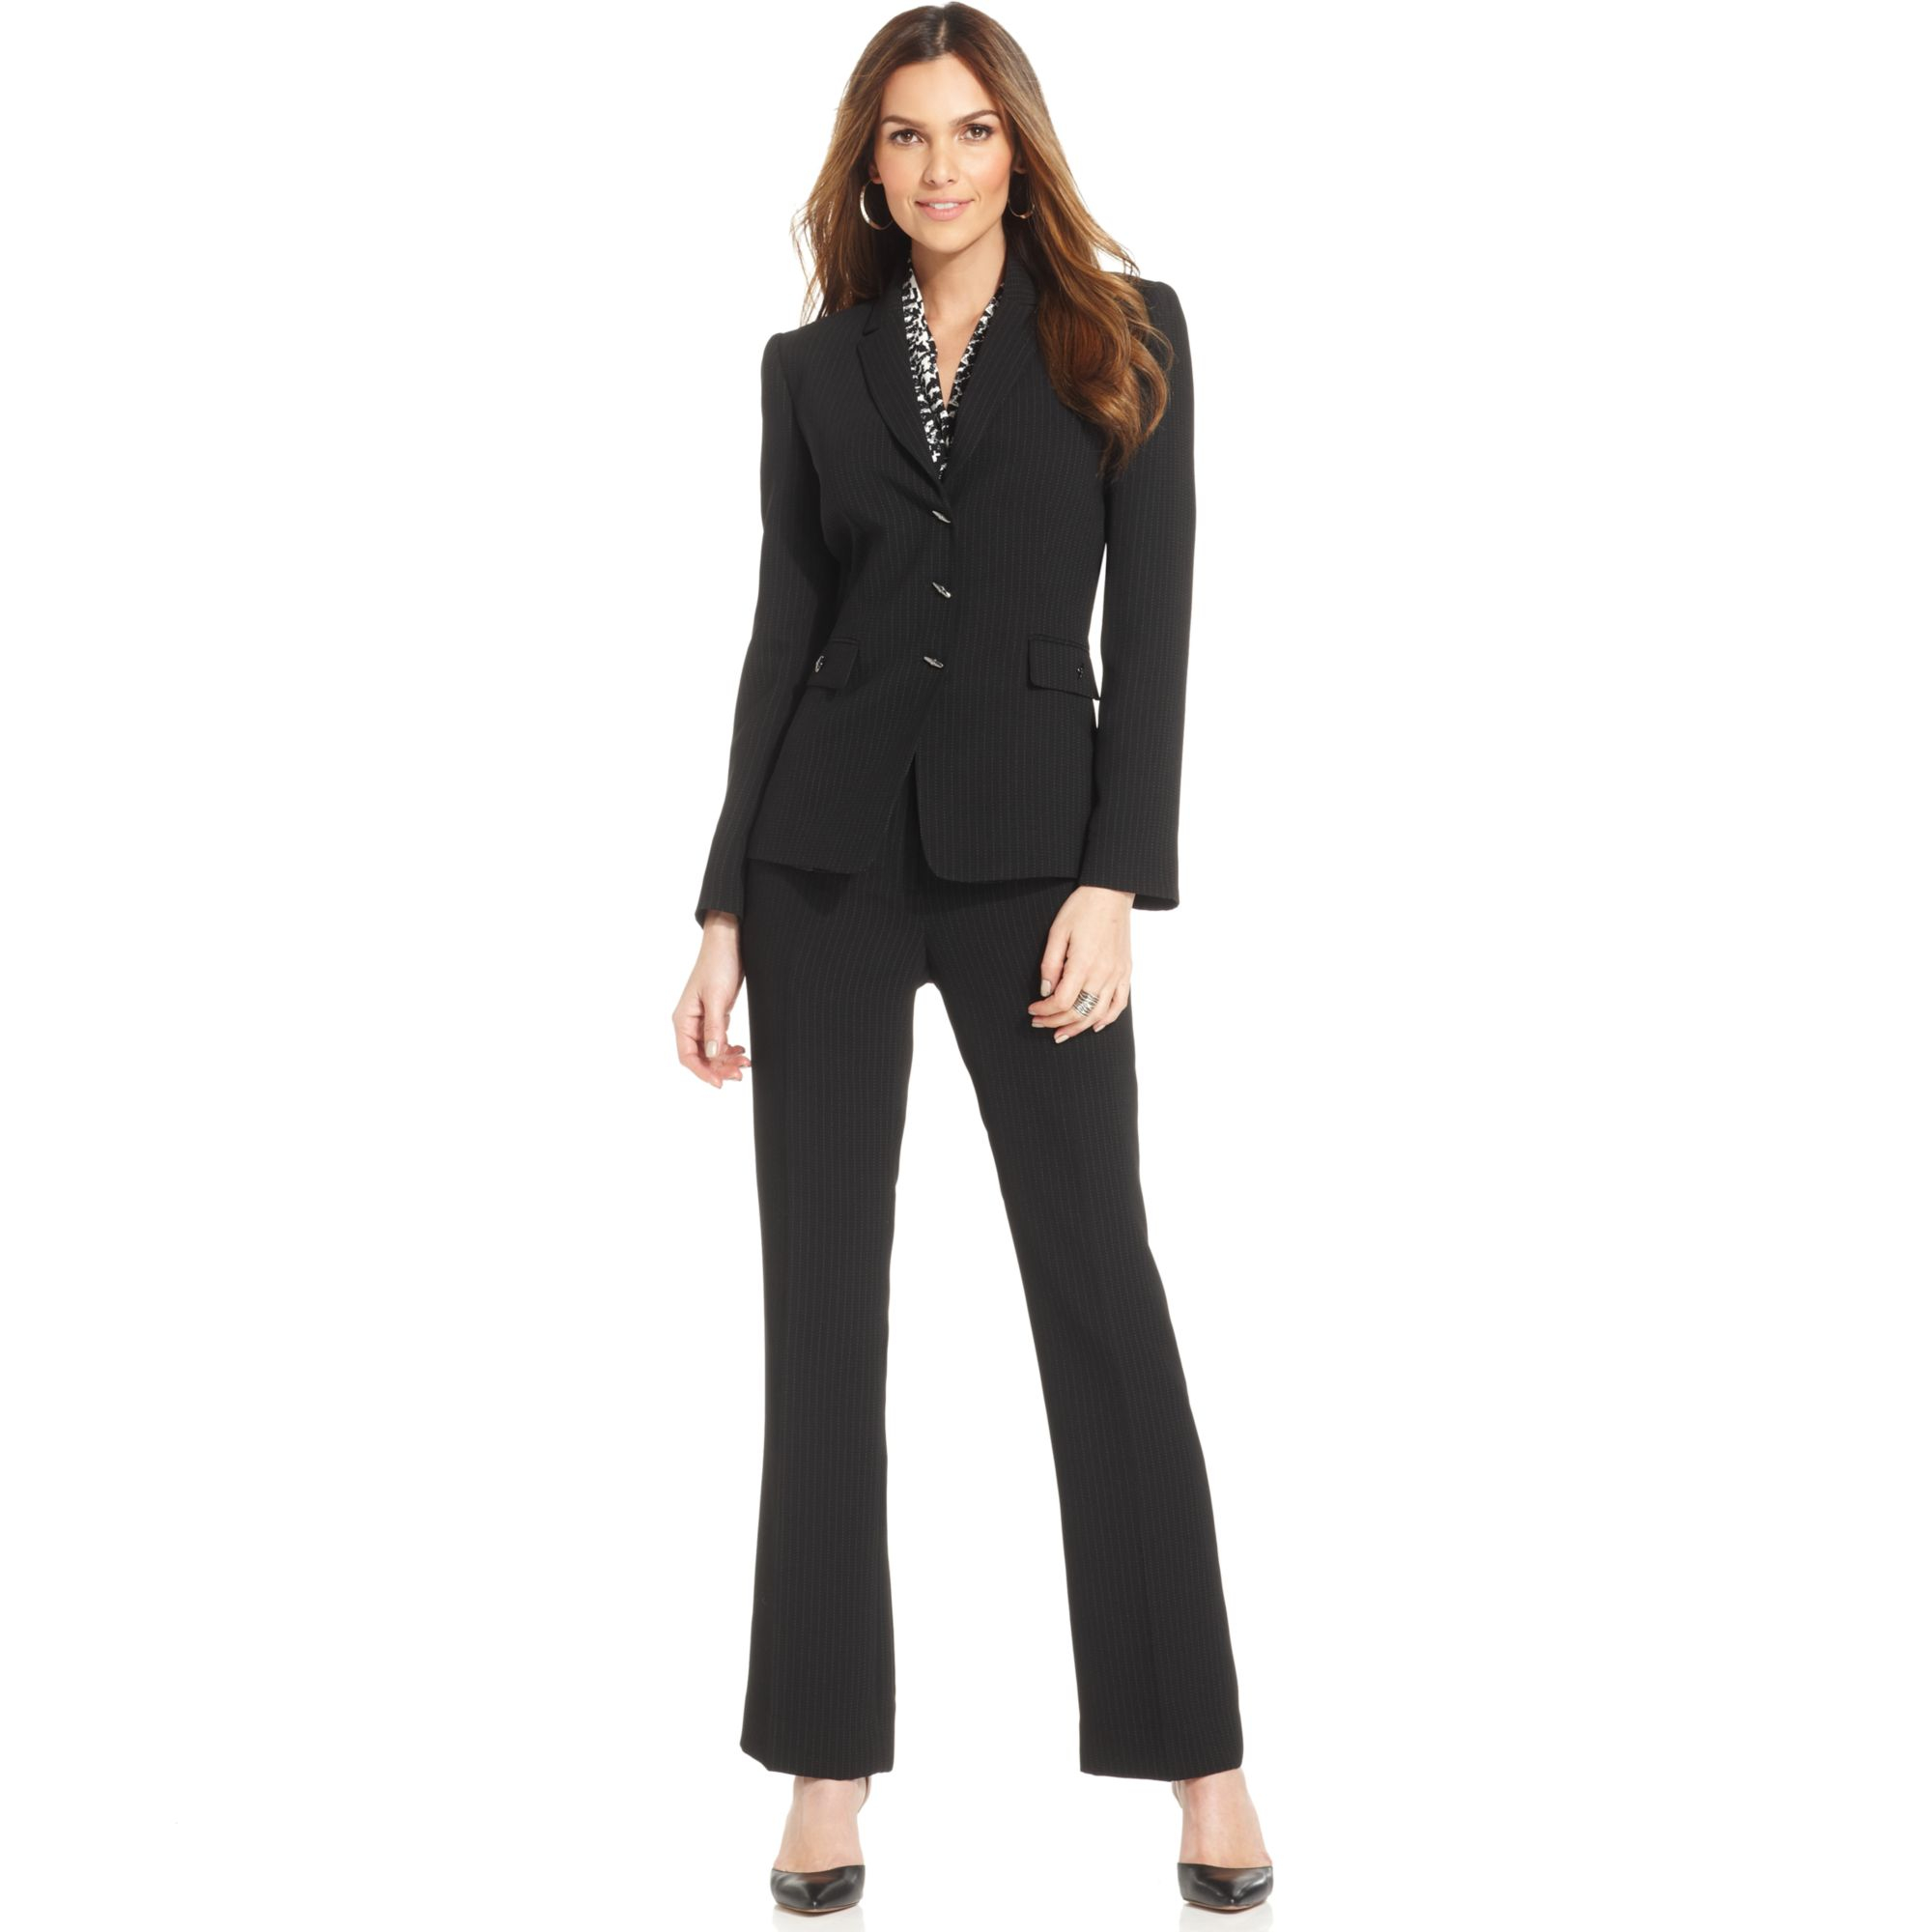 Womens Black Pants Suit ($ - $): 30 of items - Shop Womens Black Pants Suit from ALL your favorite stores & find HUGE SAVINGS up to 80% off Womens Black Pants Suit, including GREAT DEALS like